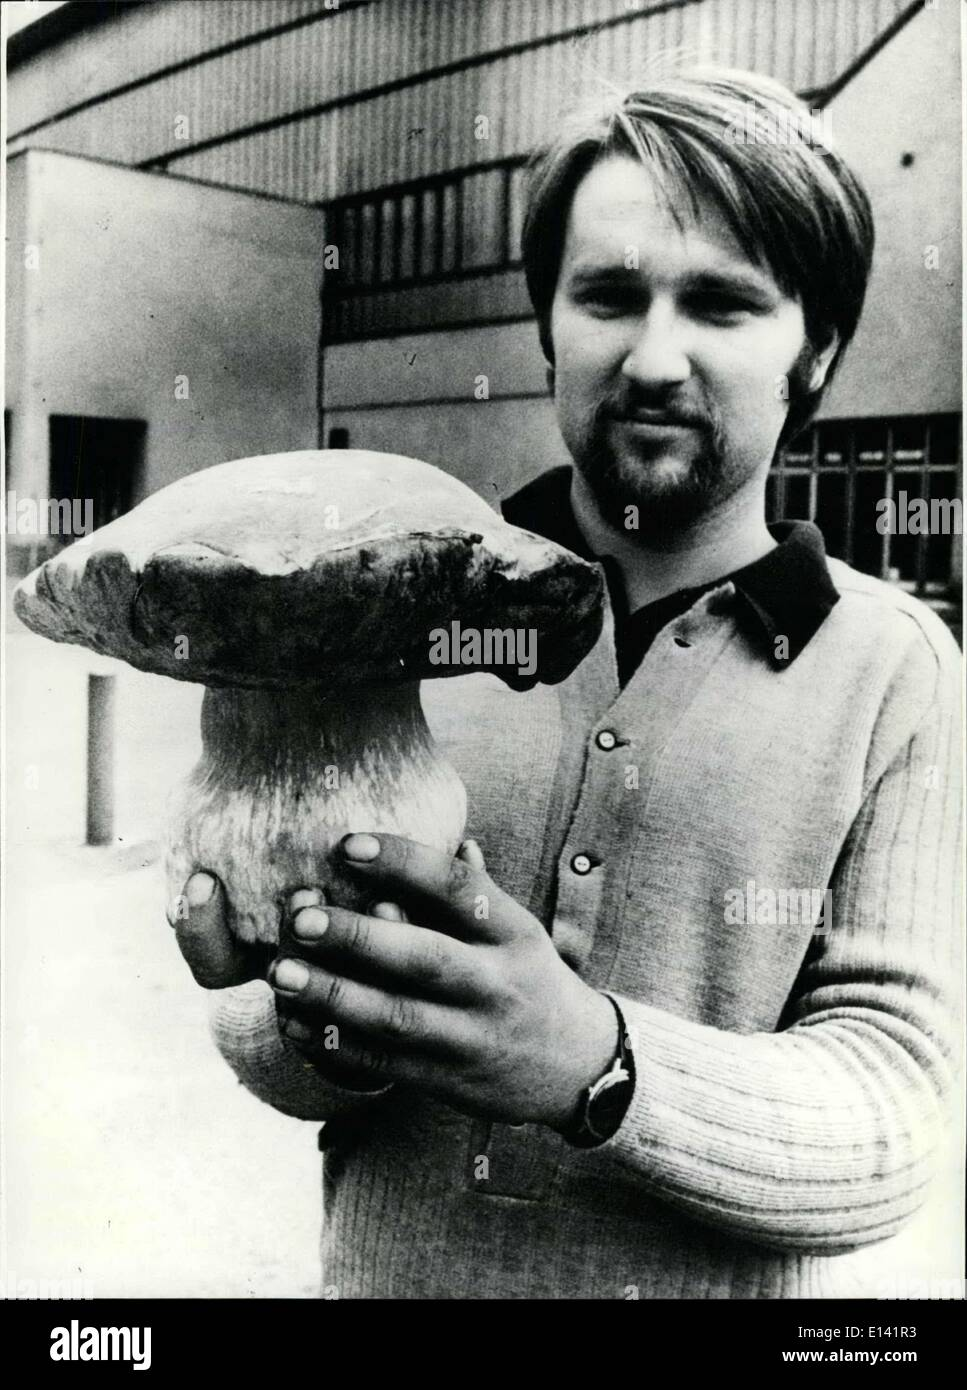 Mar. 31, 2012 - Giant Mushroom With 1, 6 Kilogram A lunch for all his friends could this young man spend by this giant edible mushroom. Jan Tomasek, driver from plzen in Western Bohemia (Czechoslovakia), found it in a near-by forest. The Boletus edulis is weighting ,16 kilogram. - Stock Image